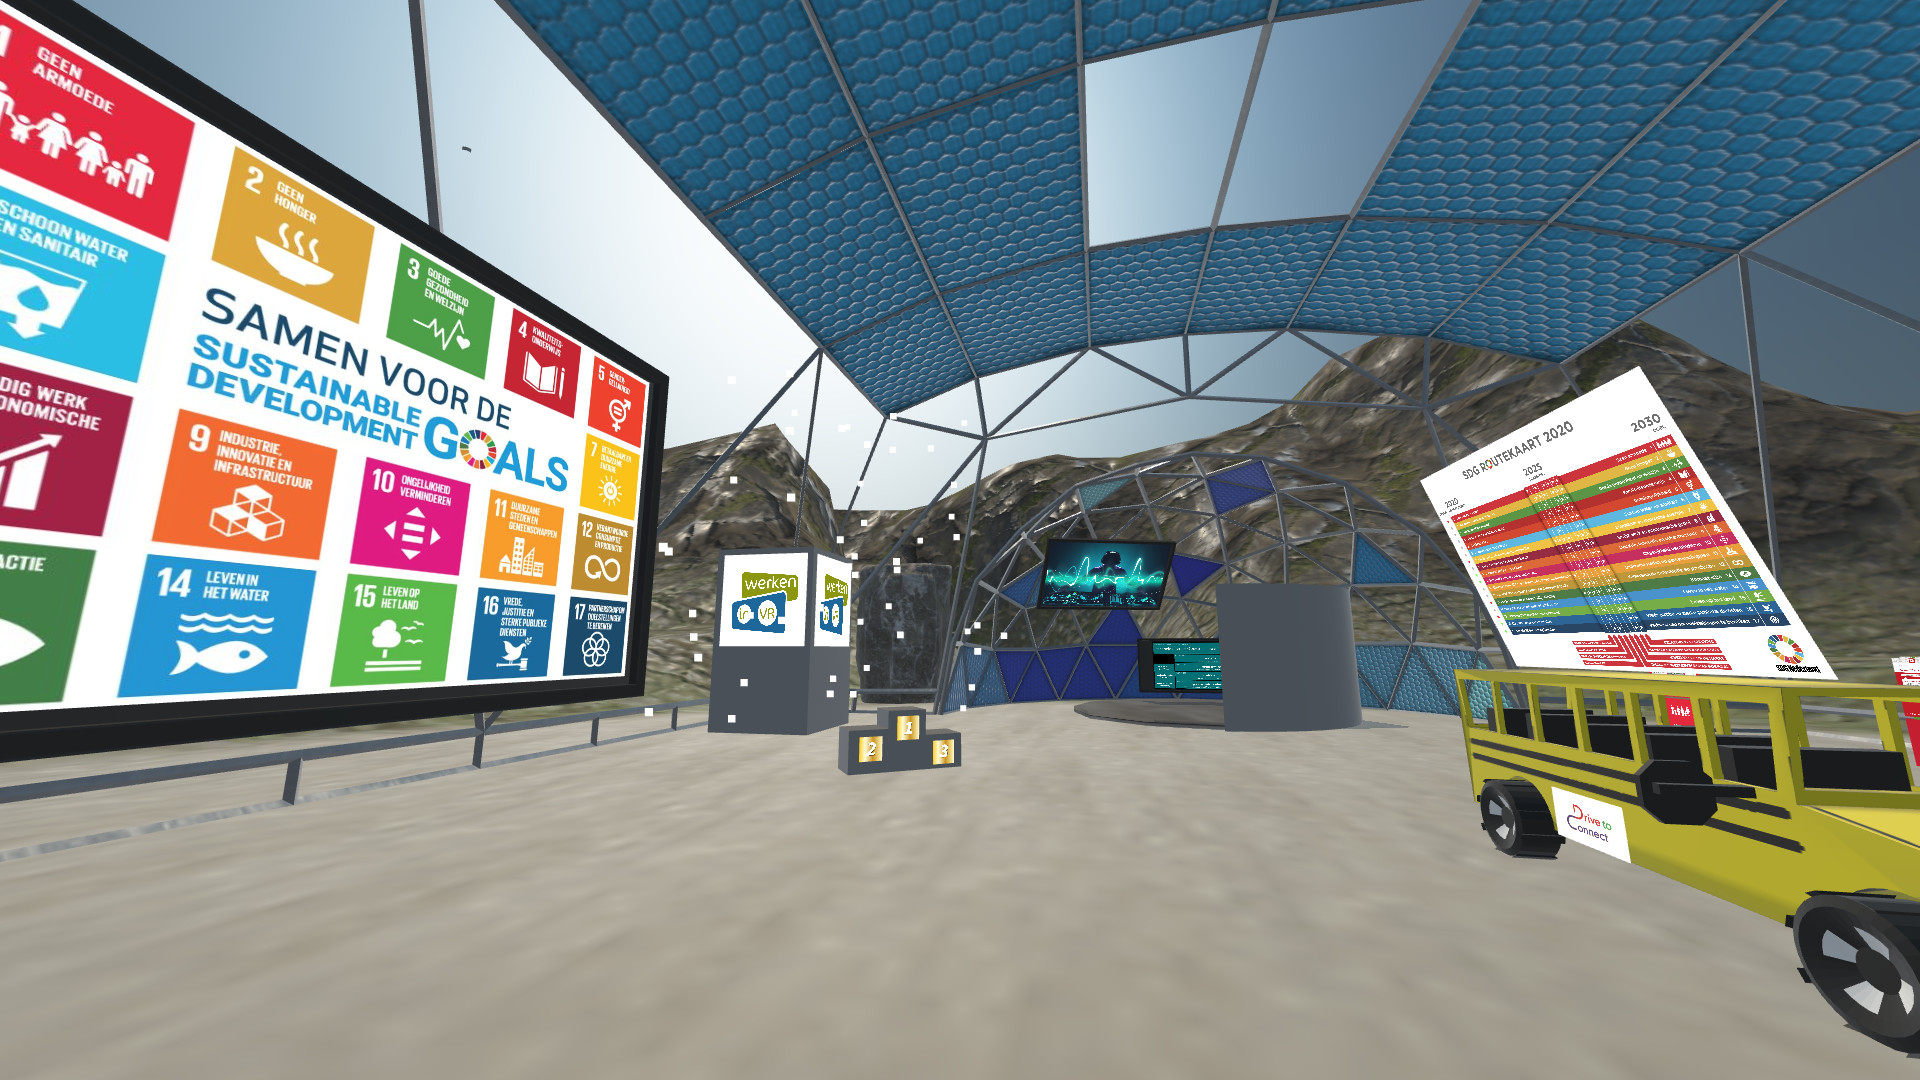 SDG Meet & Educate in VR